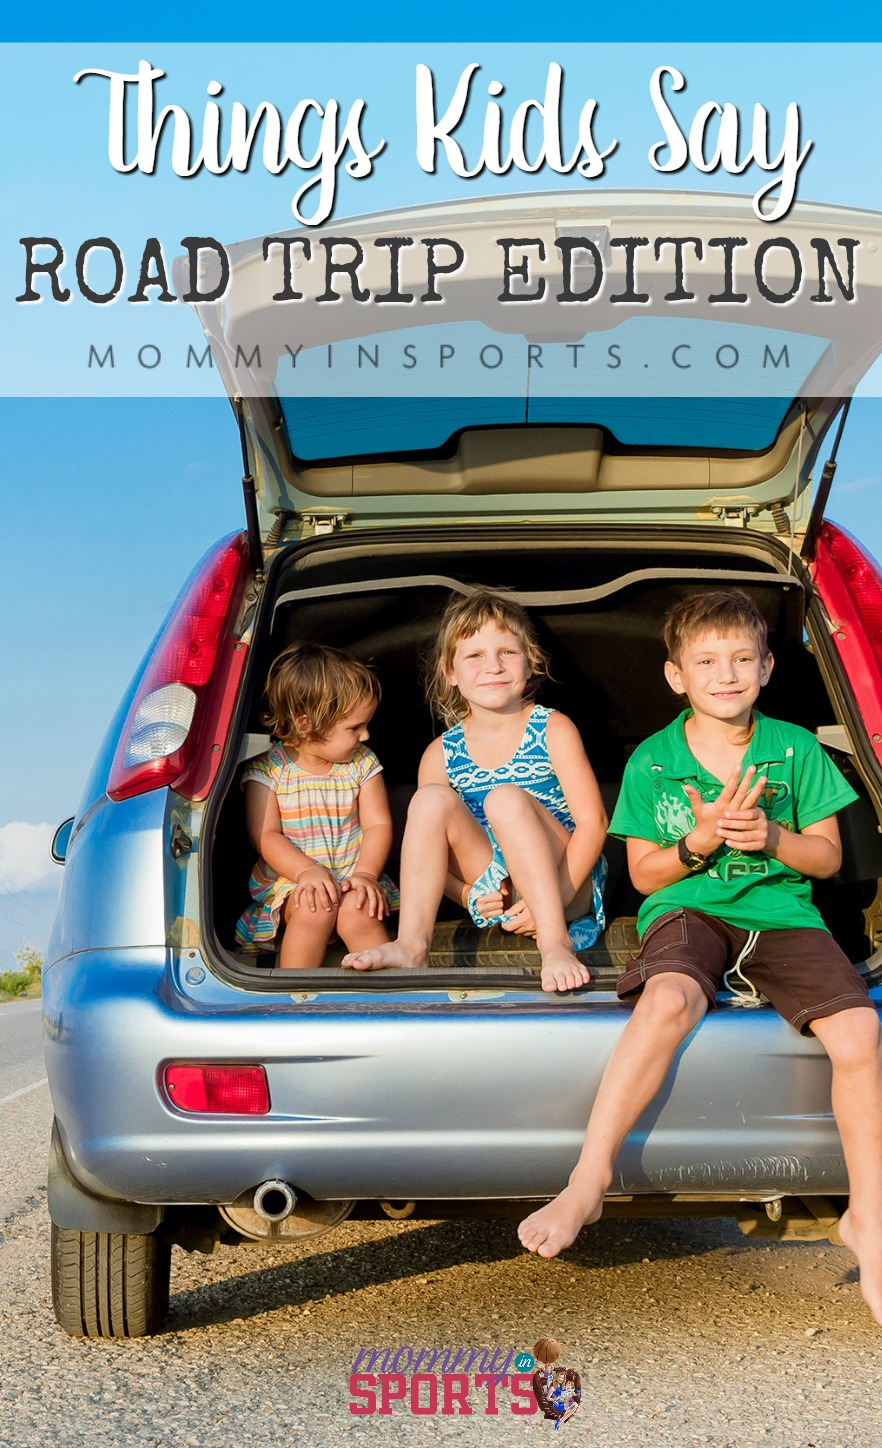 Heading out on a road trip with kids? They always make things interesting and hilarious! Check out these THINGS KIDS SAY: ROAD TRIP EDITION!